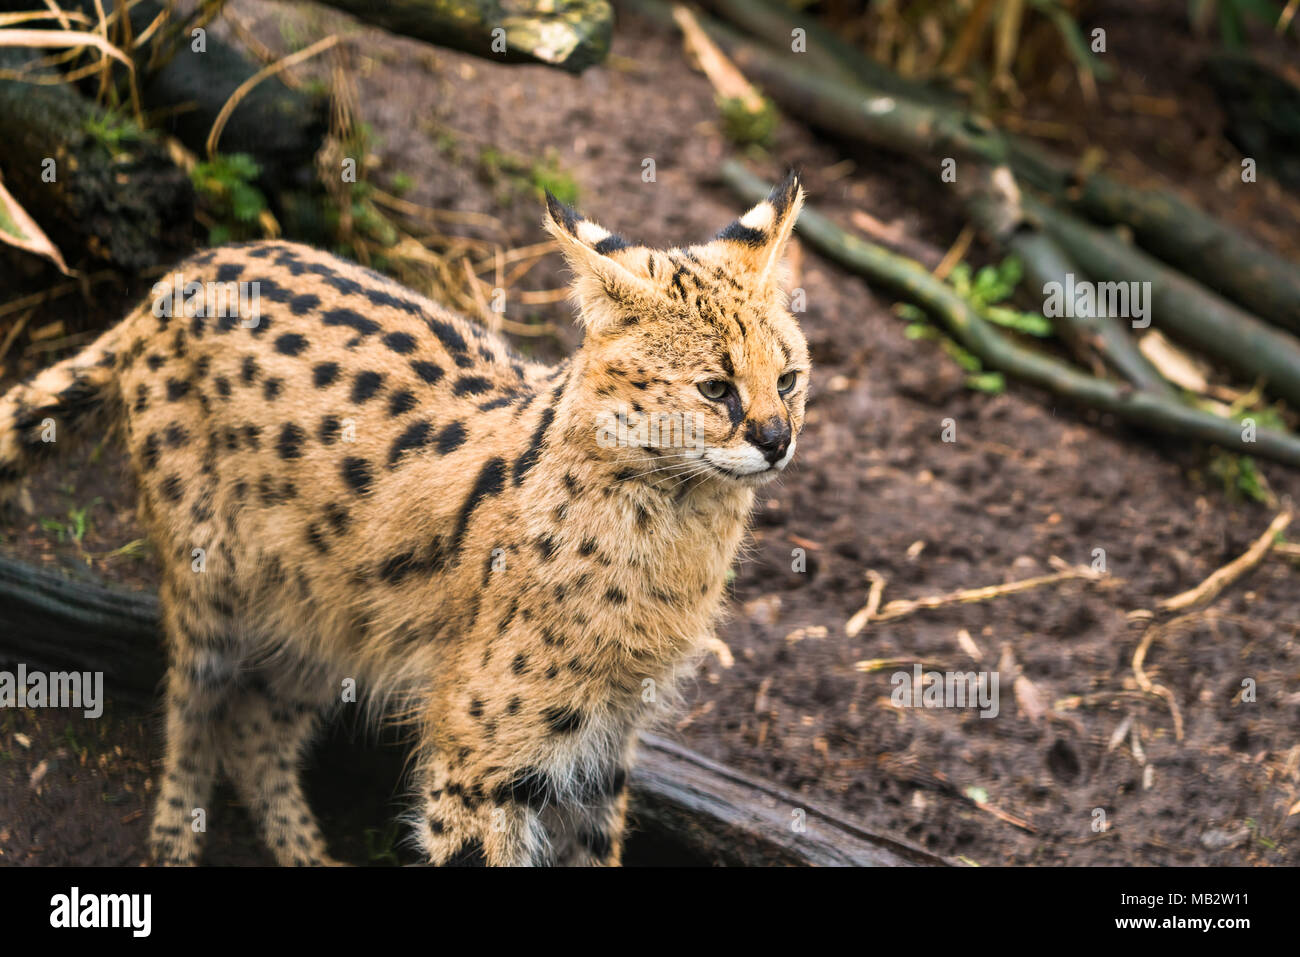 Serval (Leptailurus serval), a wild cat native to Africa - Stock Image